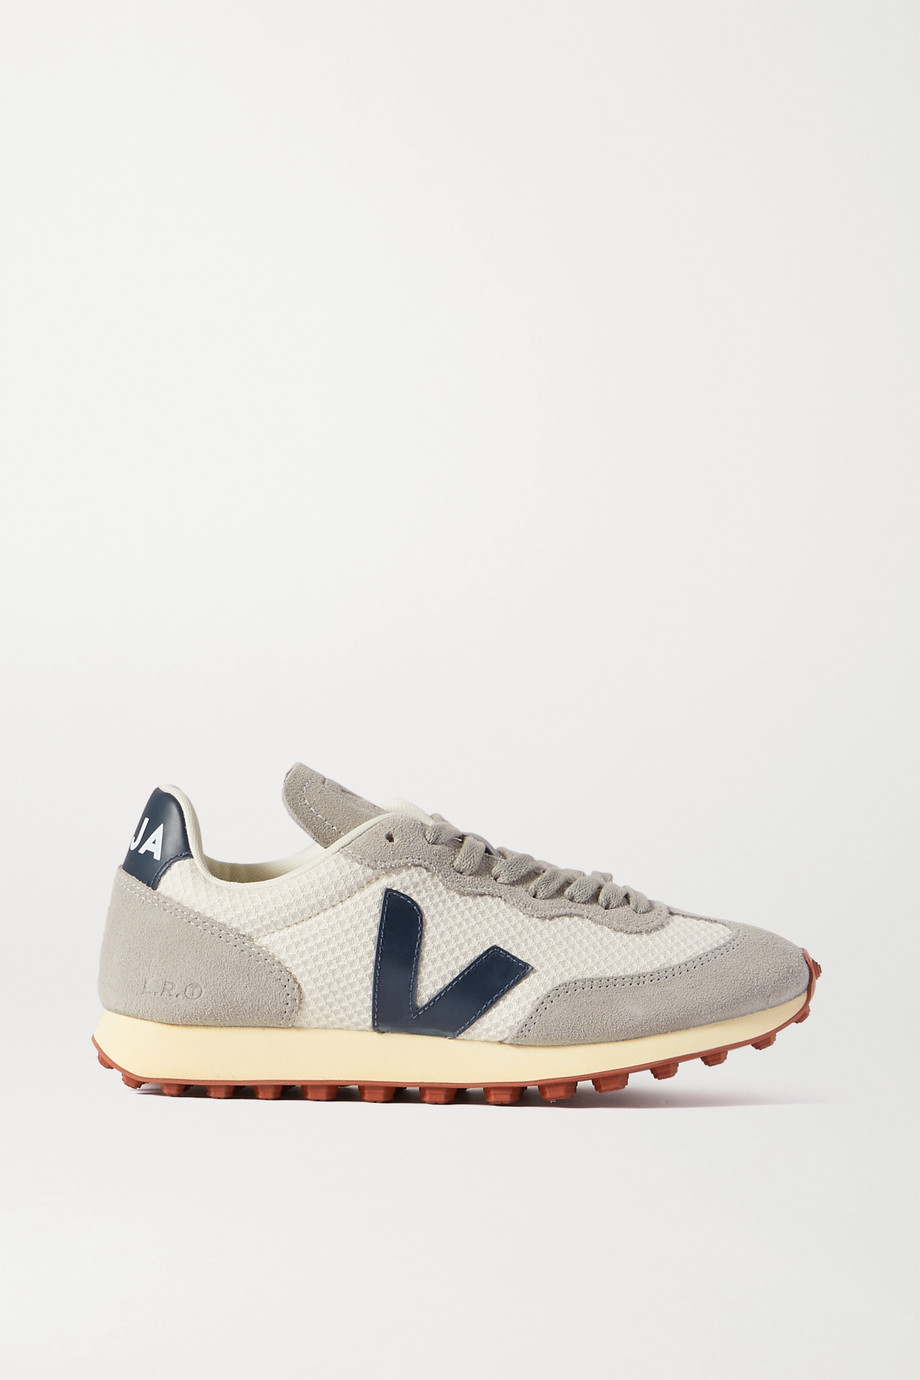 VEJA + NET SUSTAIN Rio Branco leather-trimmed suede and mesh sneakers